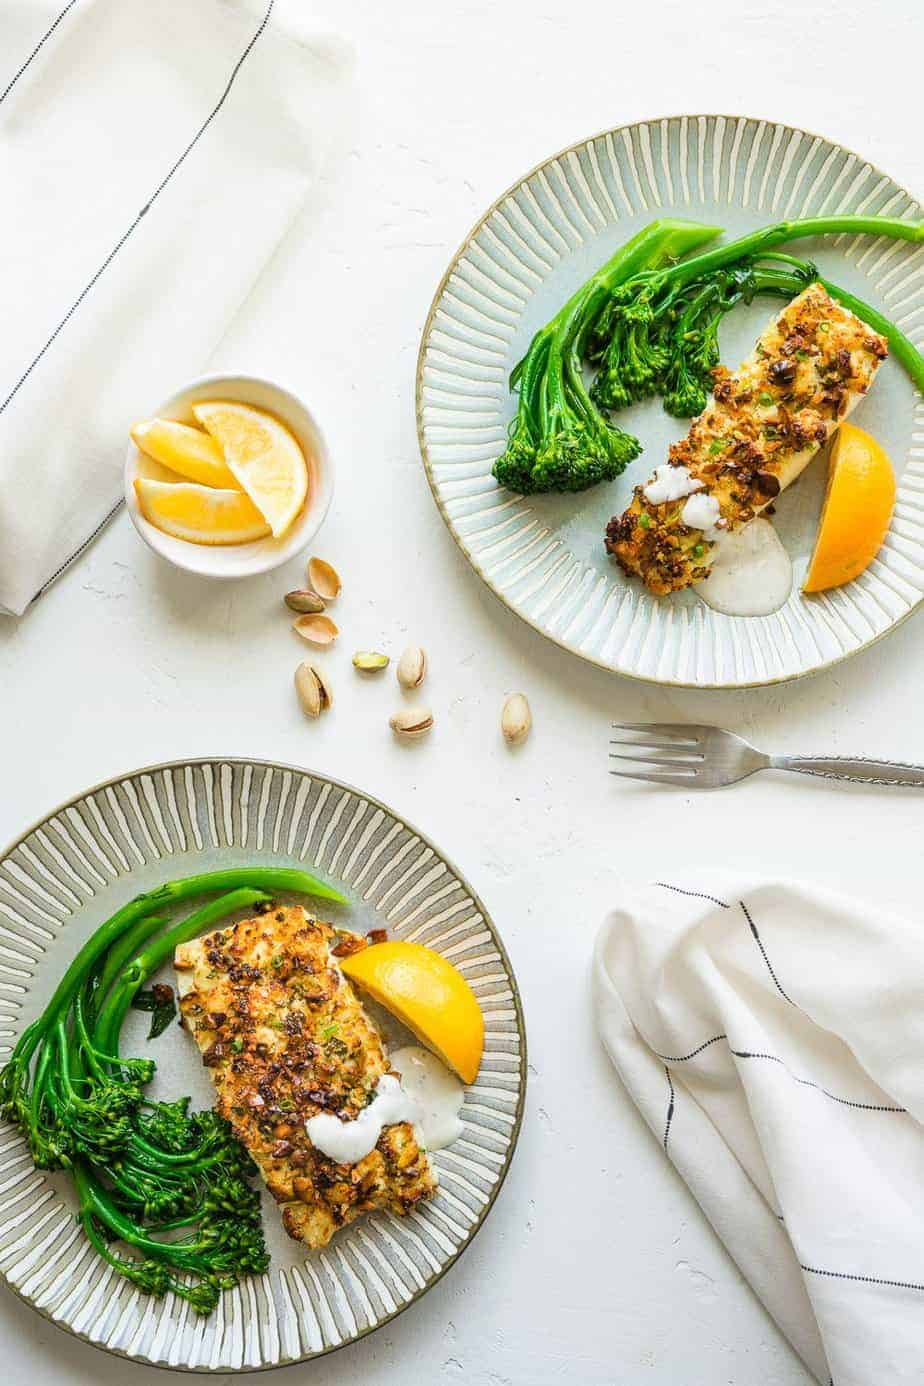 Air fryer halibut with pistachios crust serve with broccolini and lemon wedges.